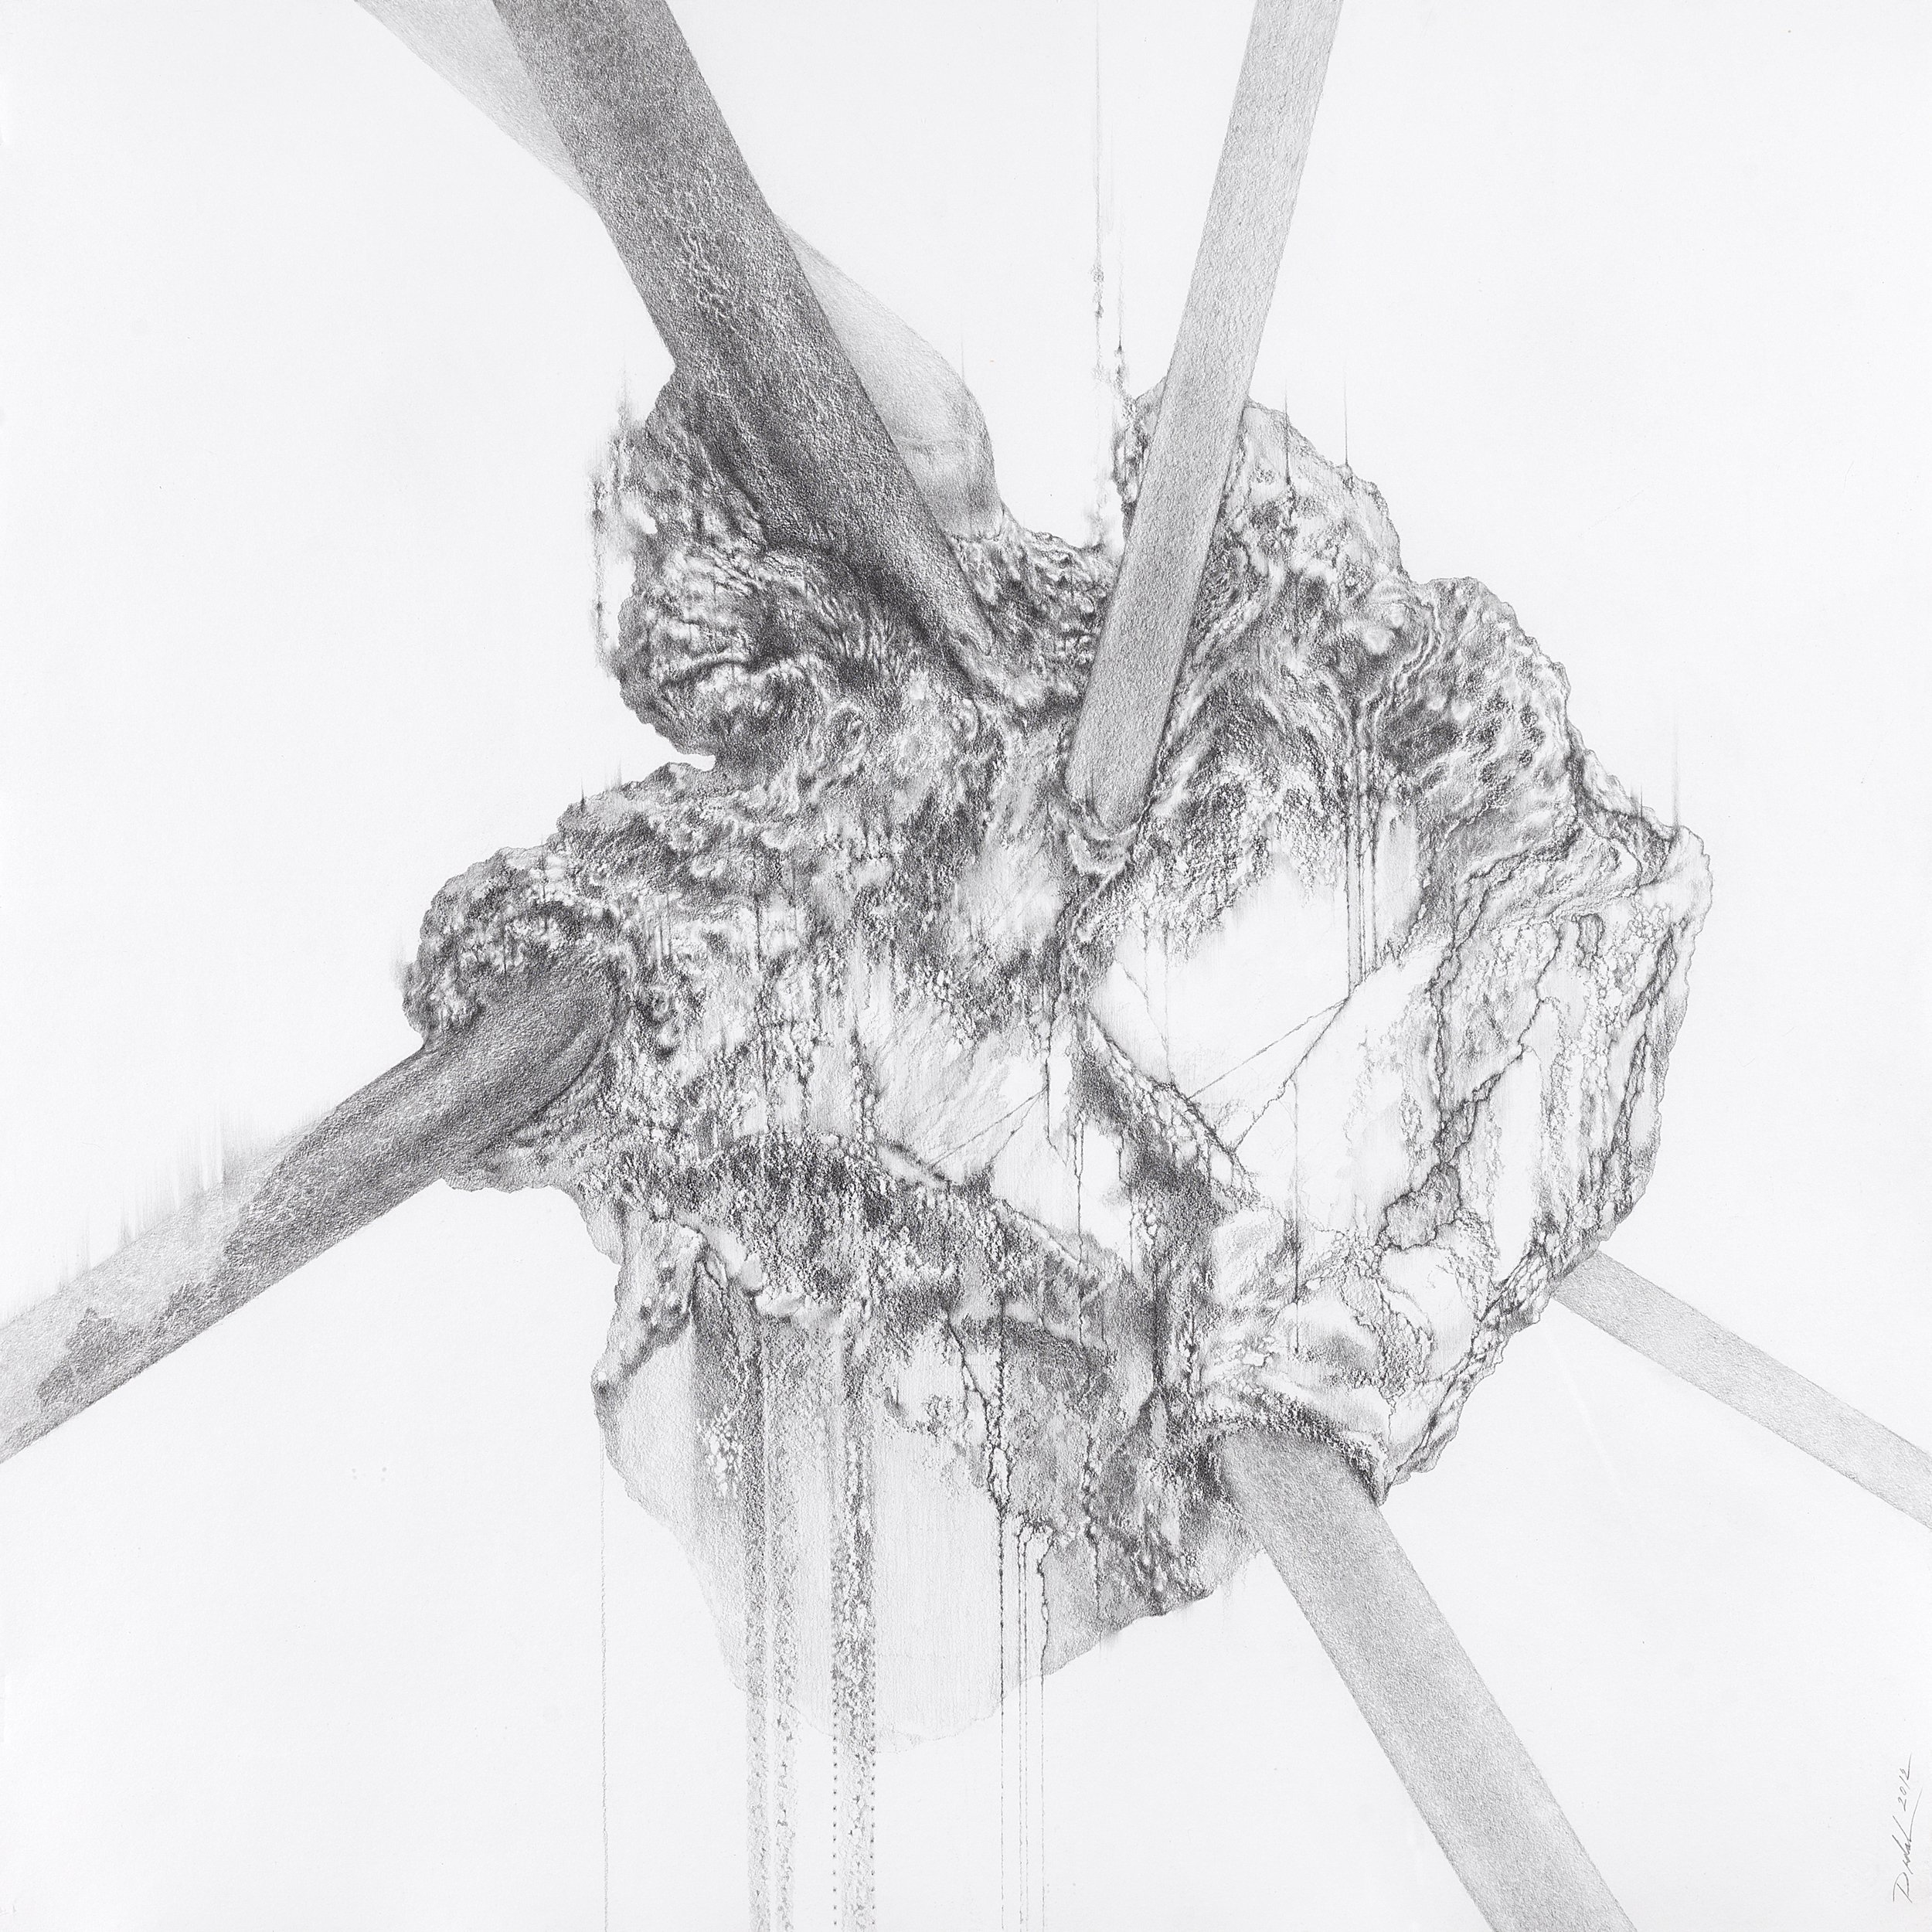 BREATHING STONE , 2014, graphite pencil on Twinrocker handmade paper, 22 x 22 inches